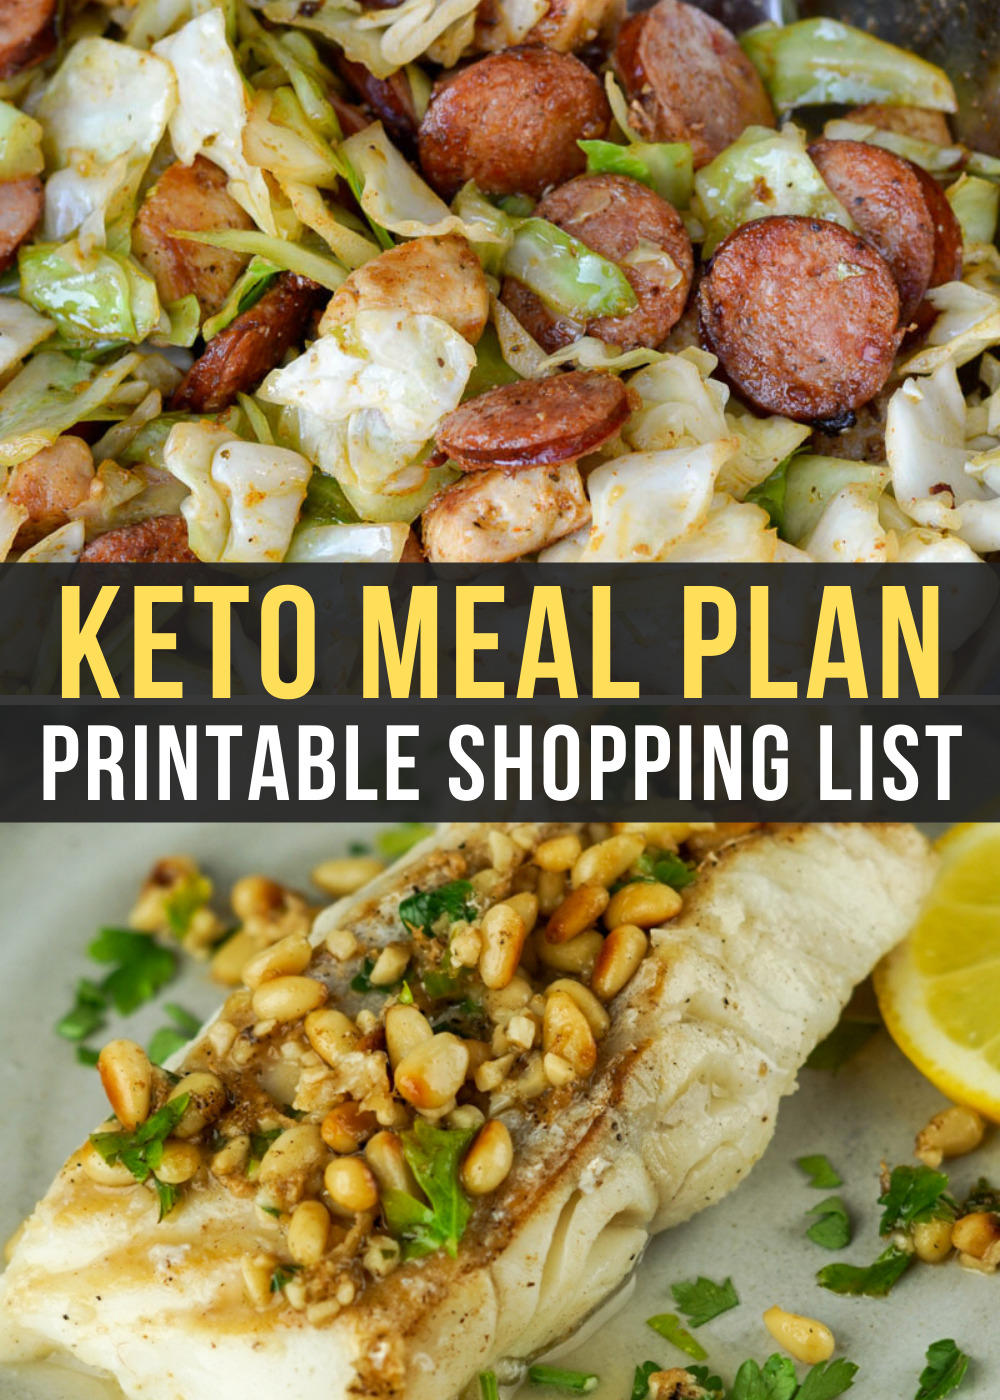 Week 21 of our Easy Keto Meal Plan includes delicious low carb dinners like Cajun Chicken Sausage Skillet and Lemon Butter Fish with Roasted Broccoli!